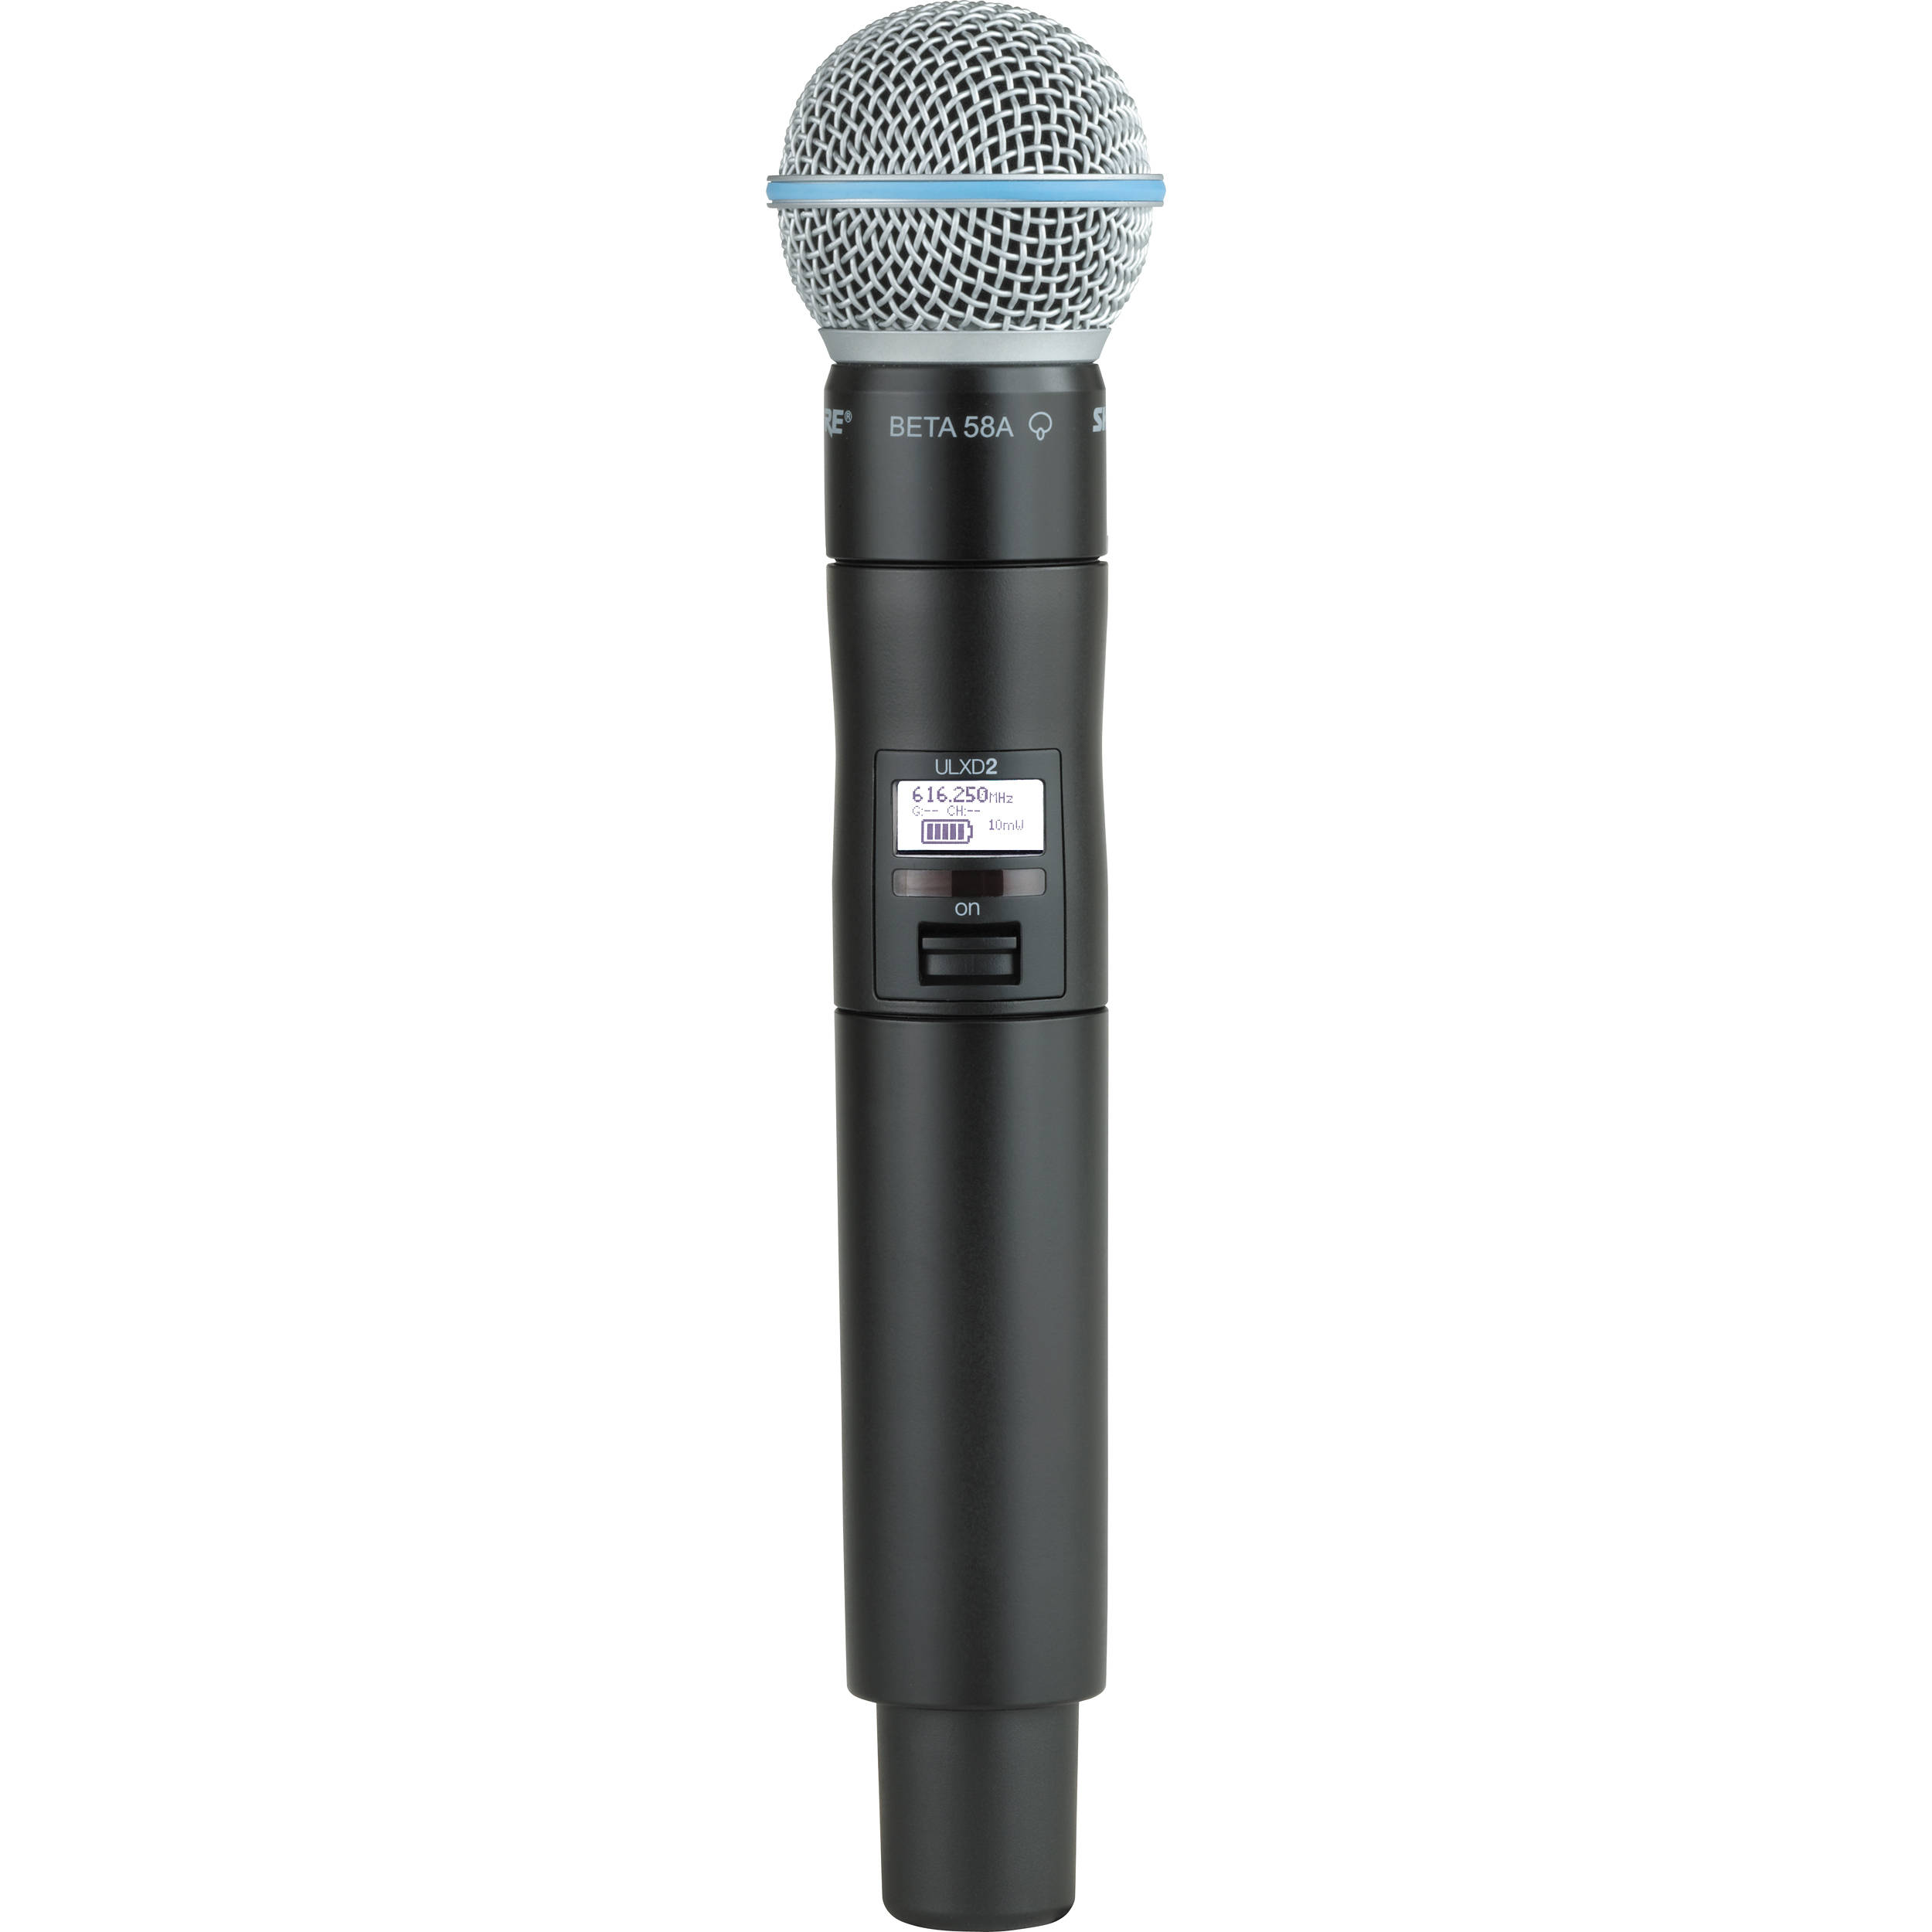 Shure ULXD2 Handheld Transmitter With Beta 58A Microphone Capsule G50